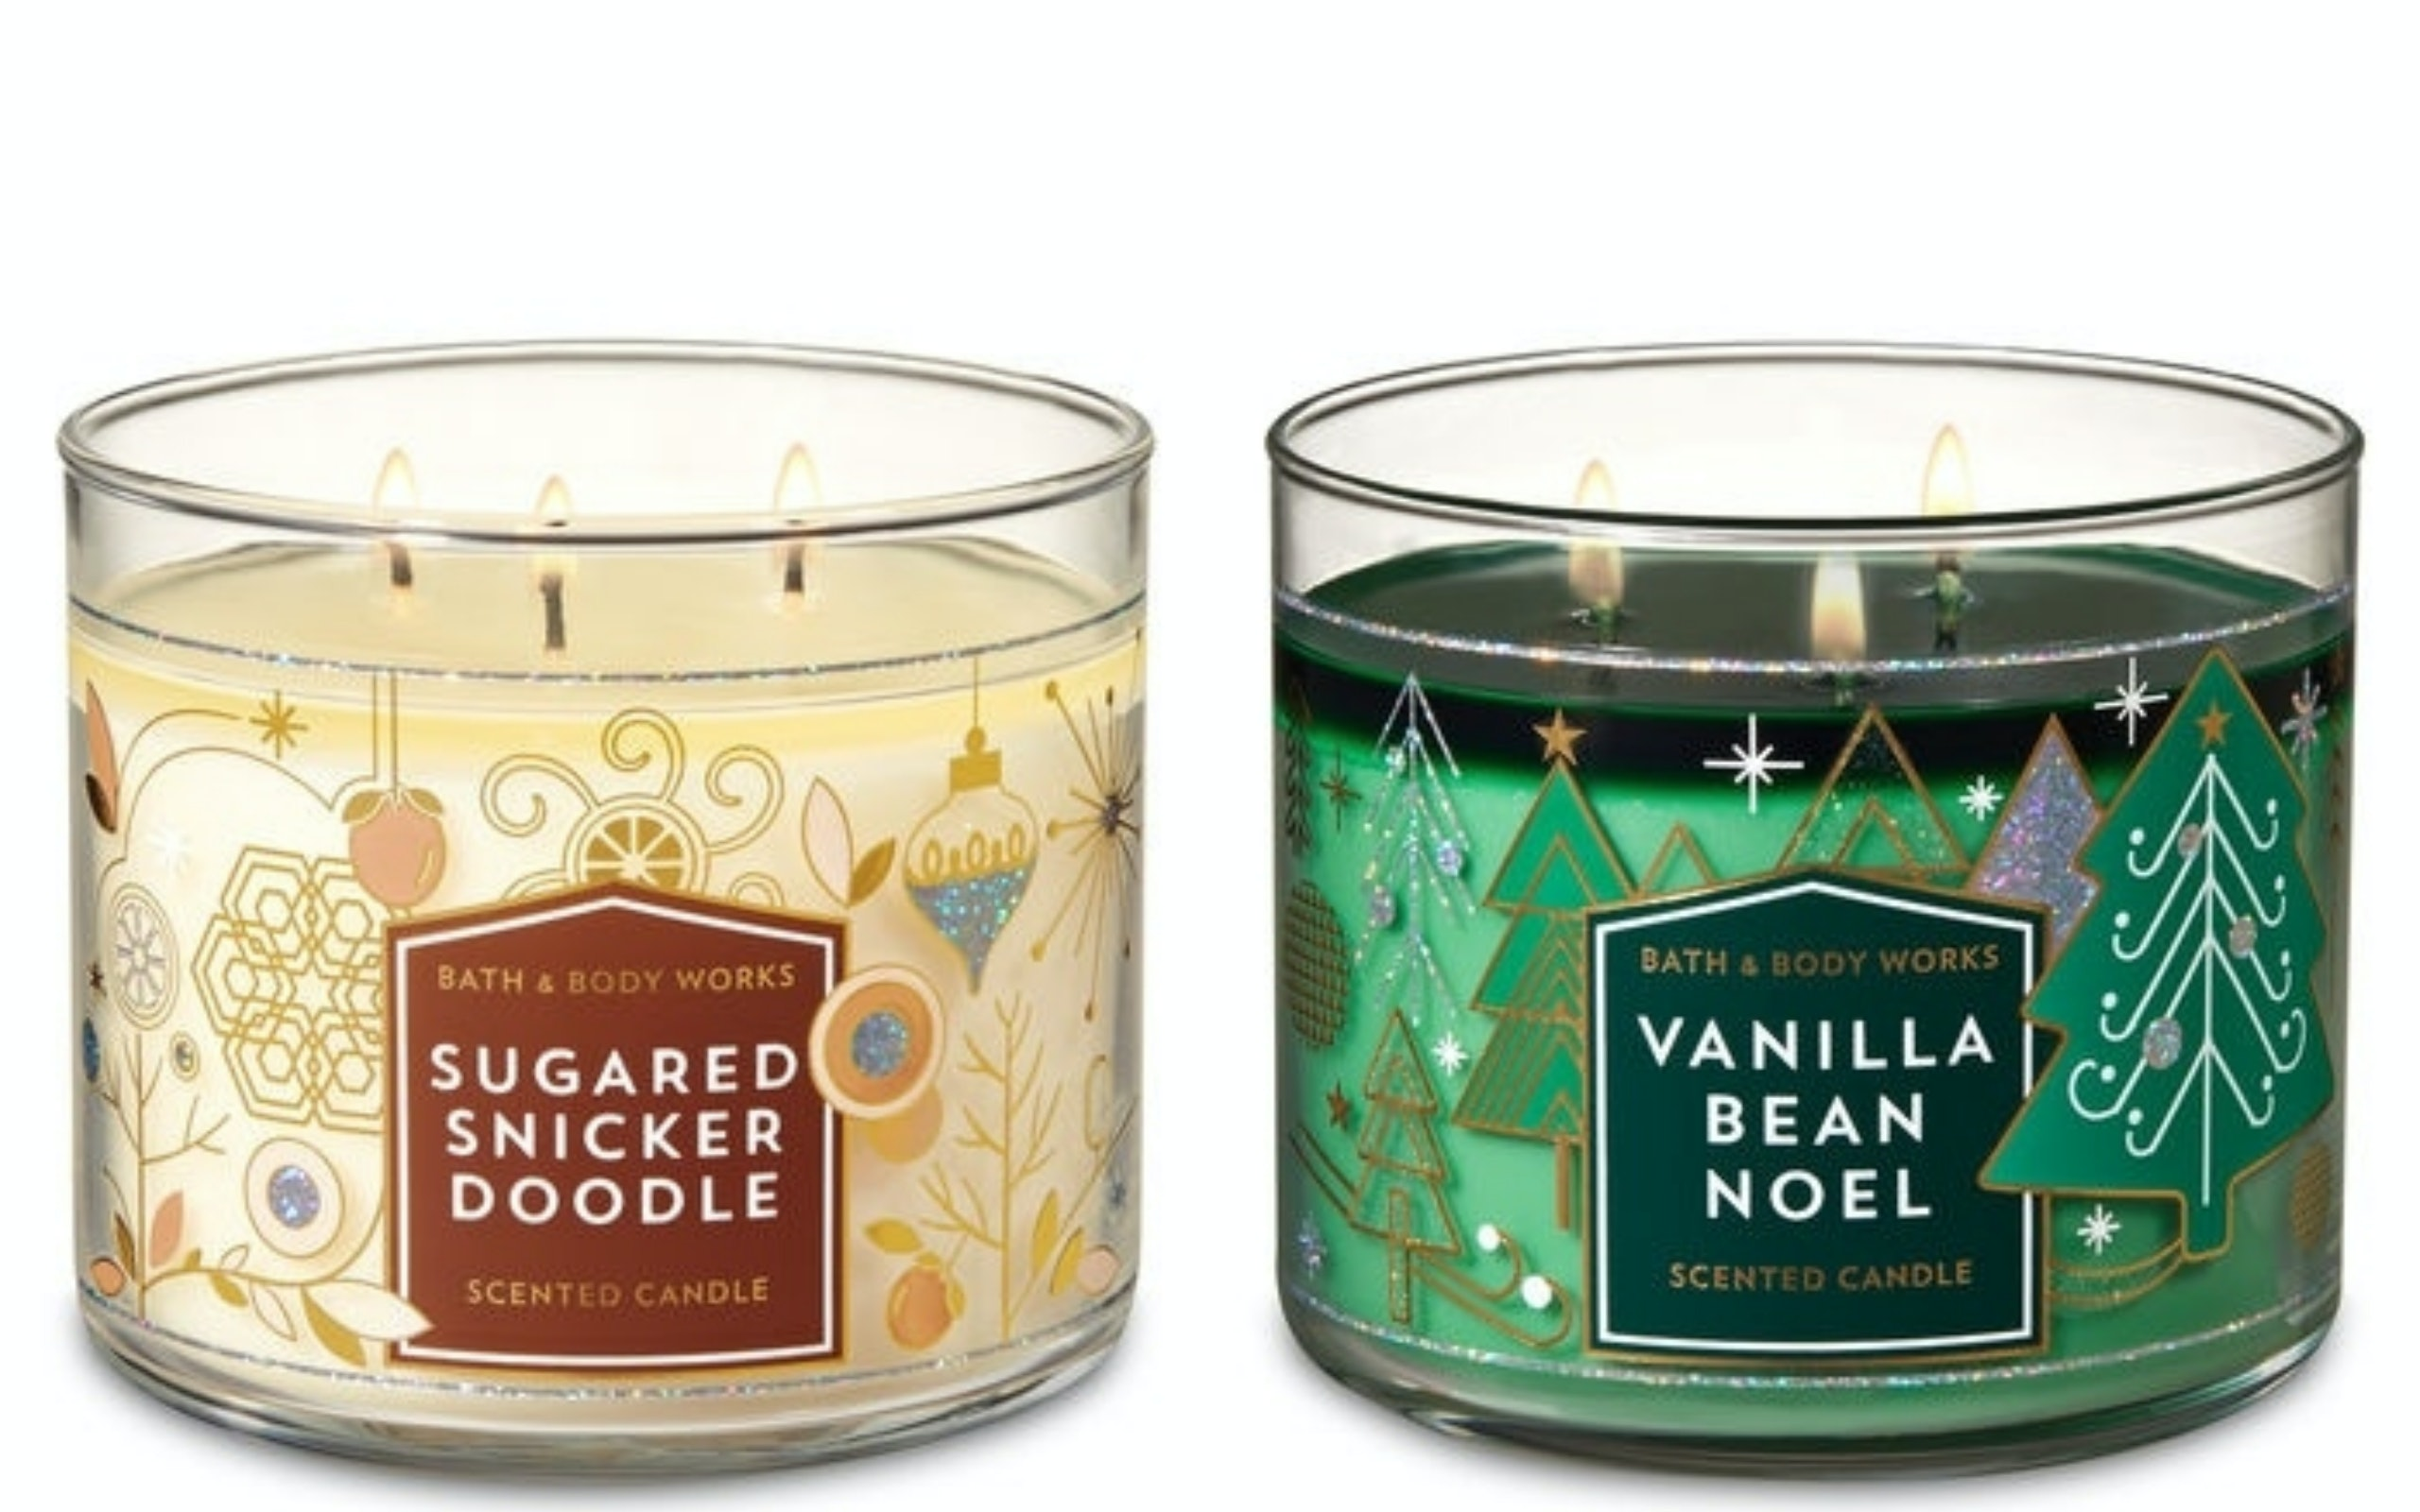 Bath & Body Works' Holiday Candles For 2018 Are Here & You